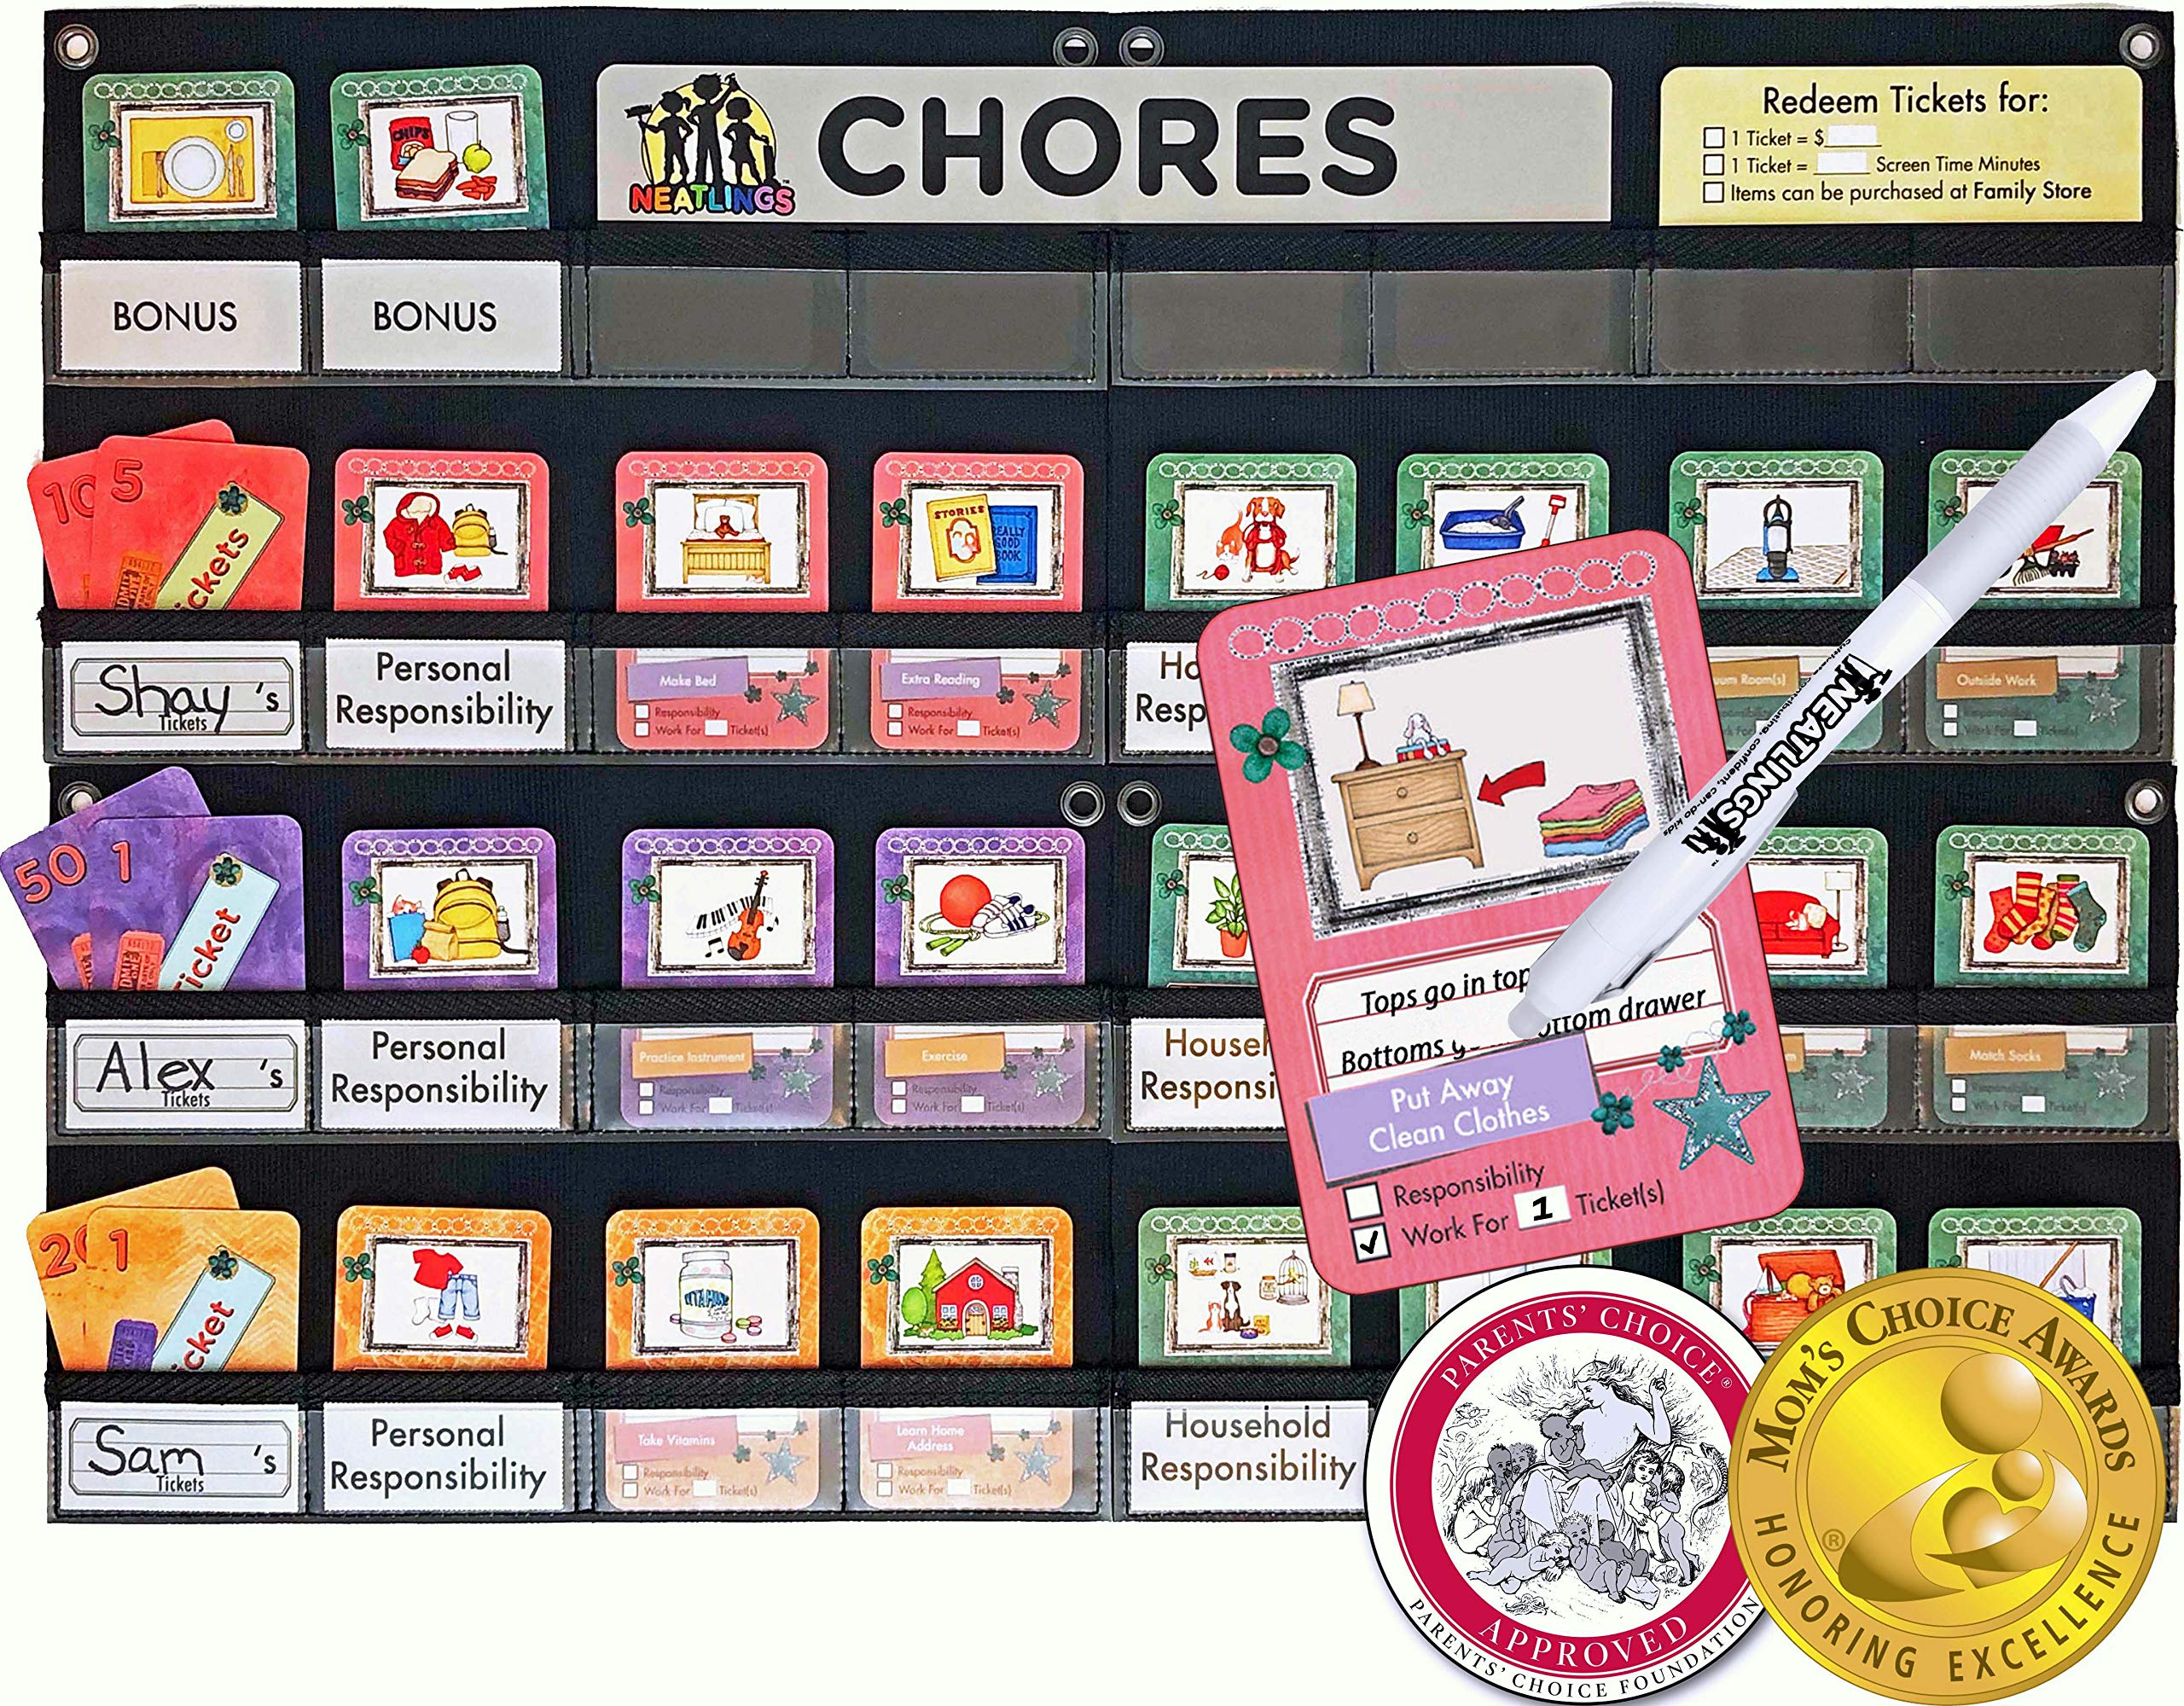 NEATLINGS Chore System - Chore Chart for Kids | 80+ Chores for Toddlers to Teens | Customize for 1-3 Kids | Size 25''x18'' | Teal Household Chore Cards/Purple, Orange, Pink Self-Care Chore Cards by NEATLINGS